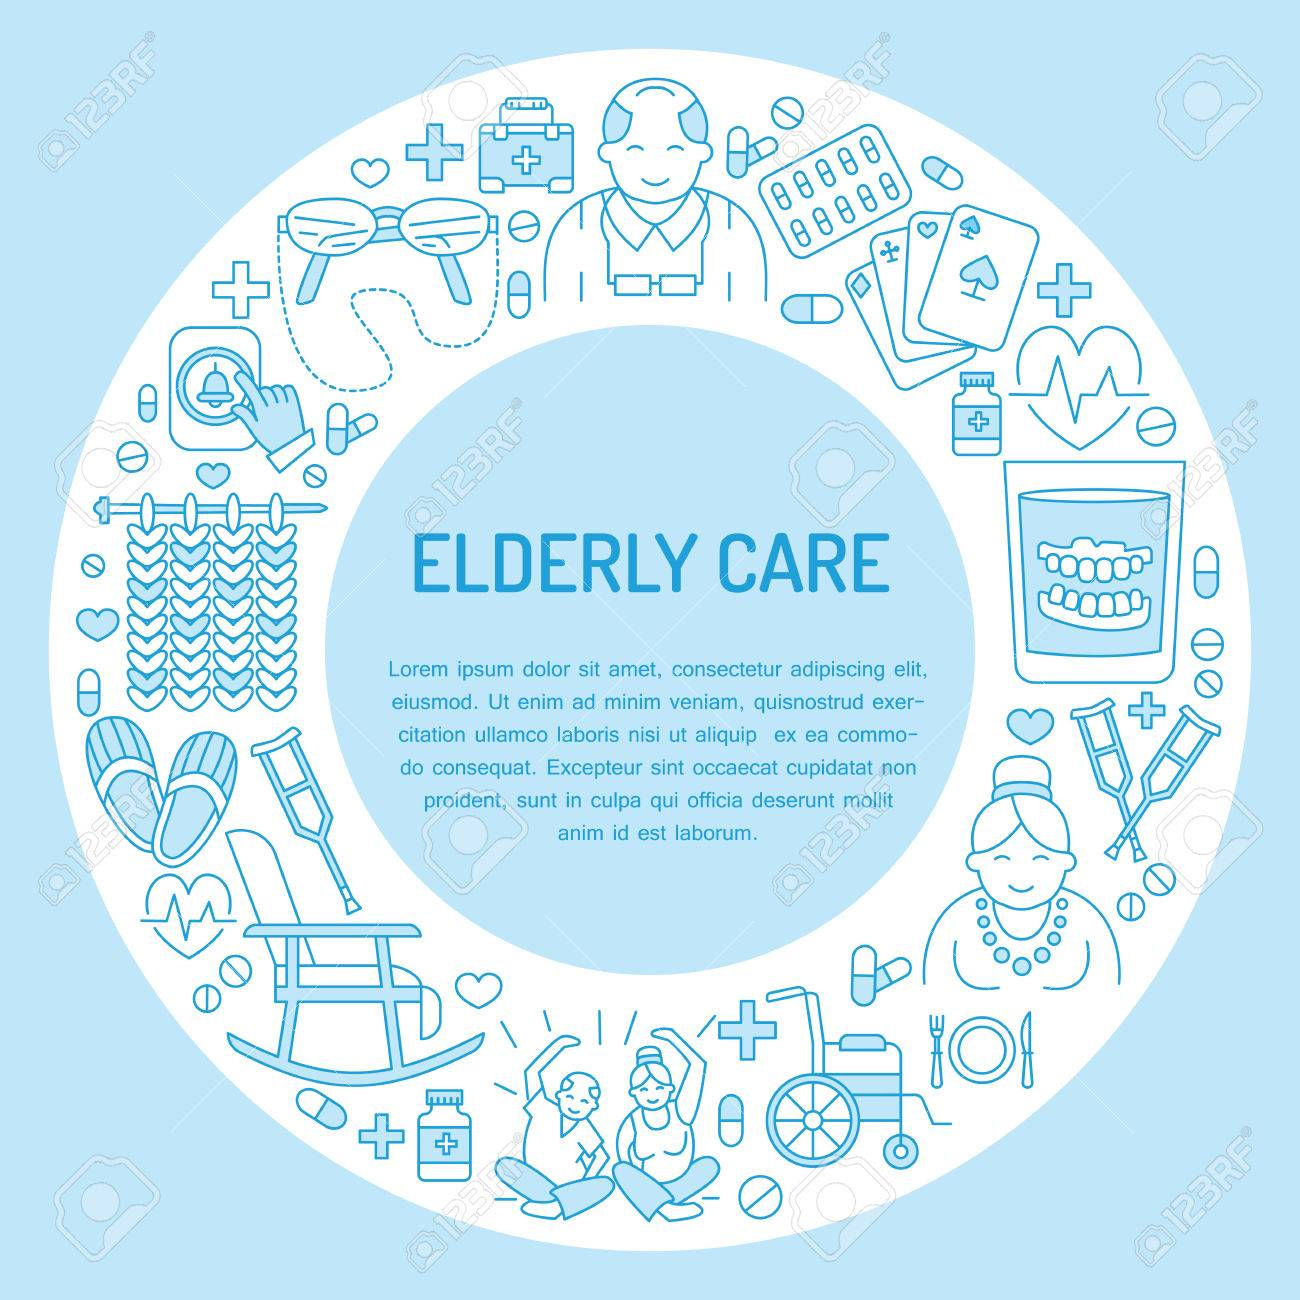 Modern vector line icon of senior and elderly care. Medical poster template with illustration of old people, wheelchair, leisure, hospital call button, doctor. Linear banner for nursing home - 66482634